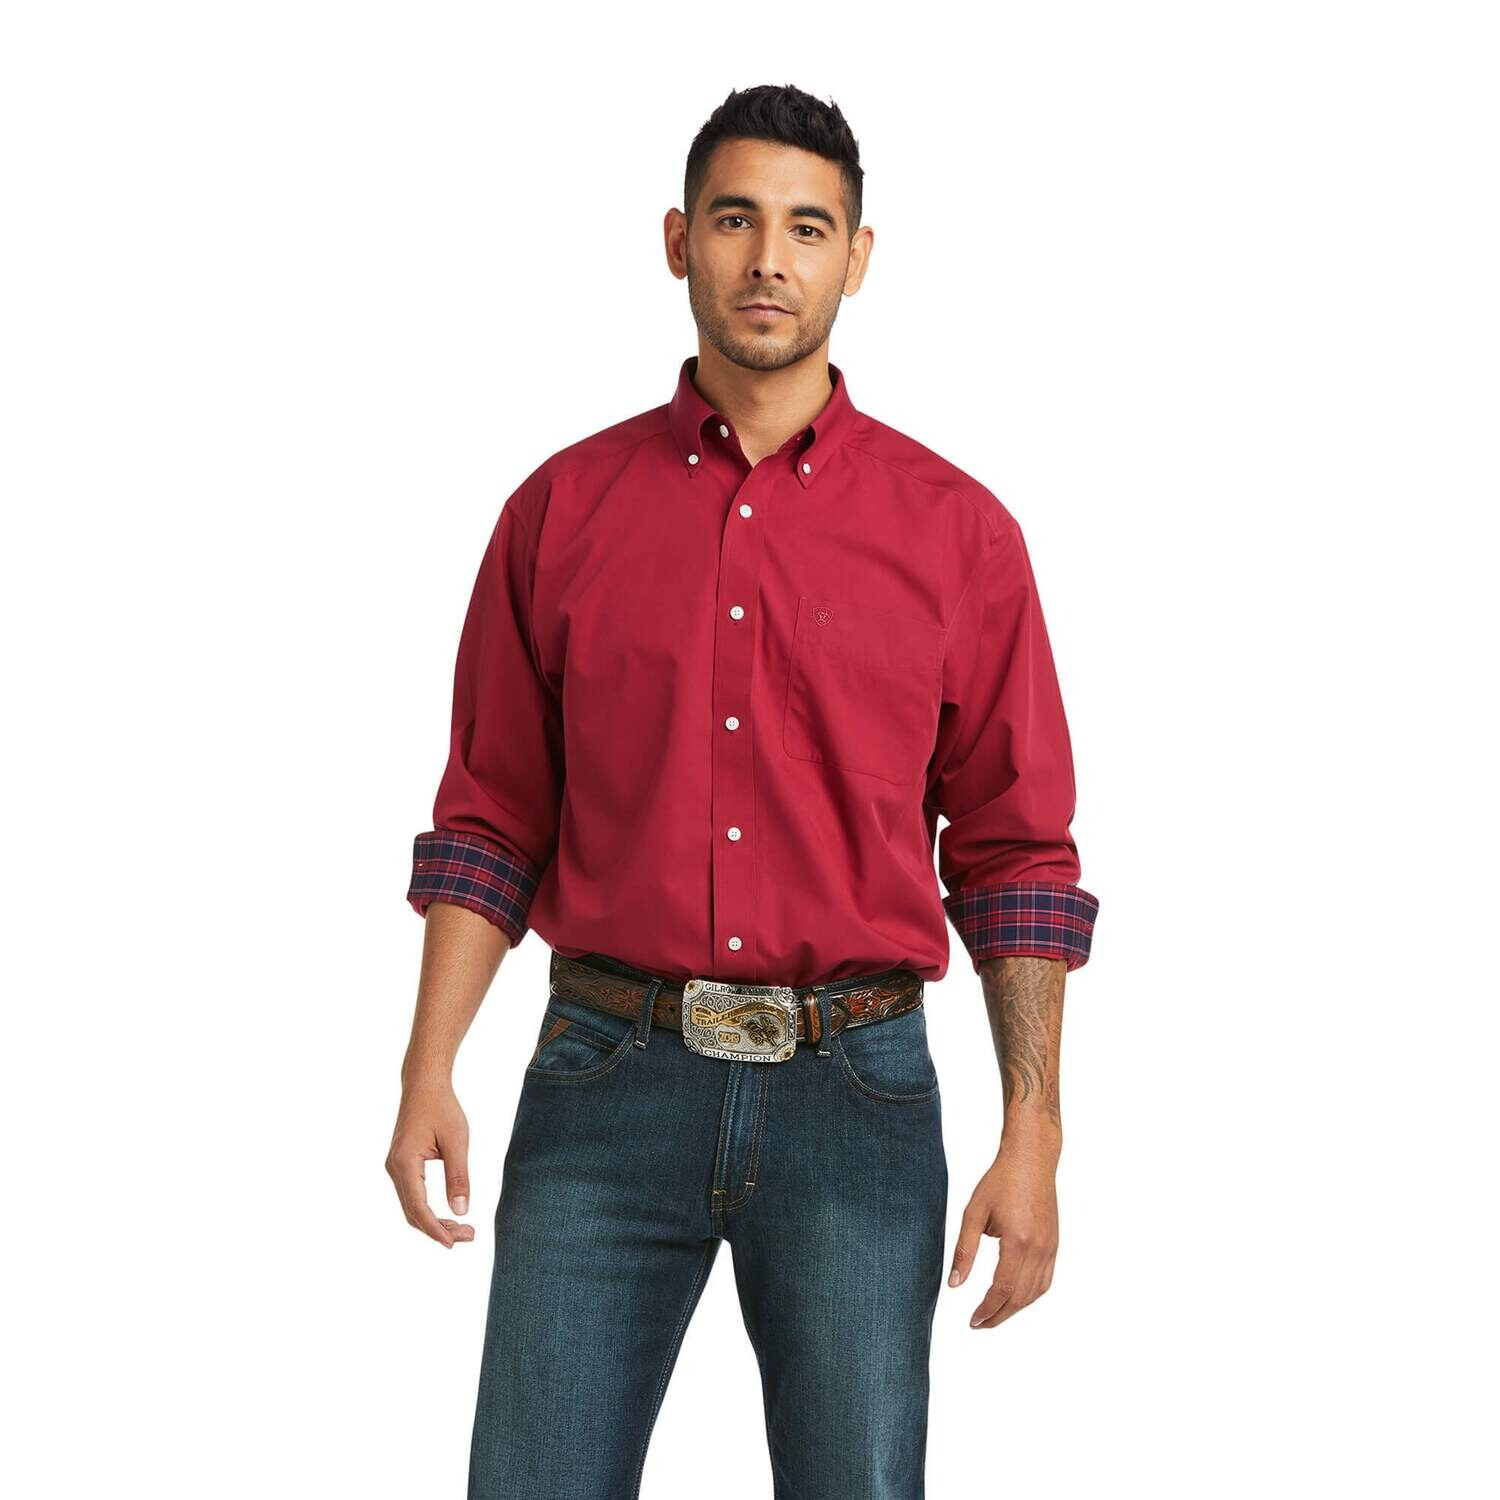 Ariat Men's Solid Classic Fit Button Down - Rubia Red